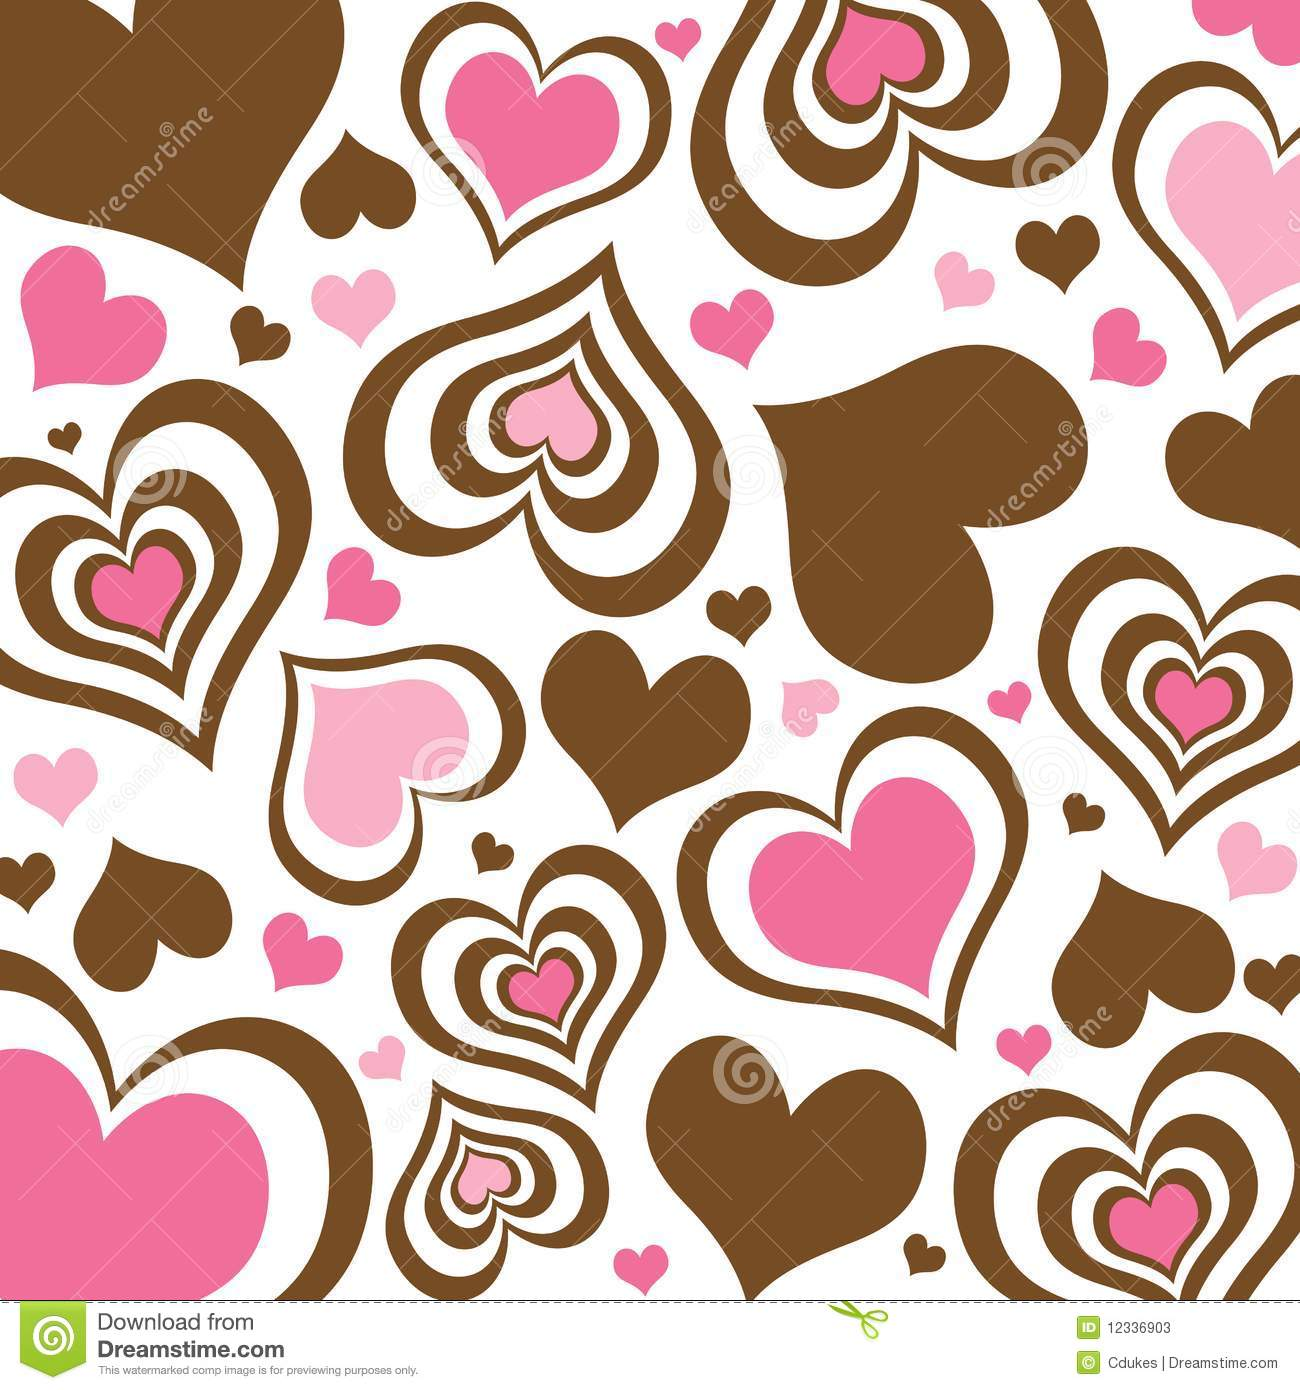 Brown And Pink Hearts Background Stock Photos - Image: 12336903